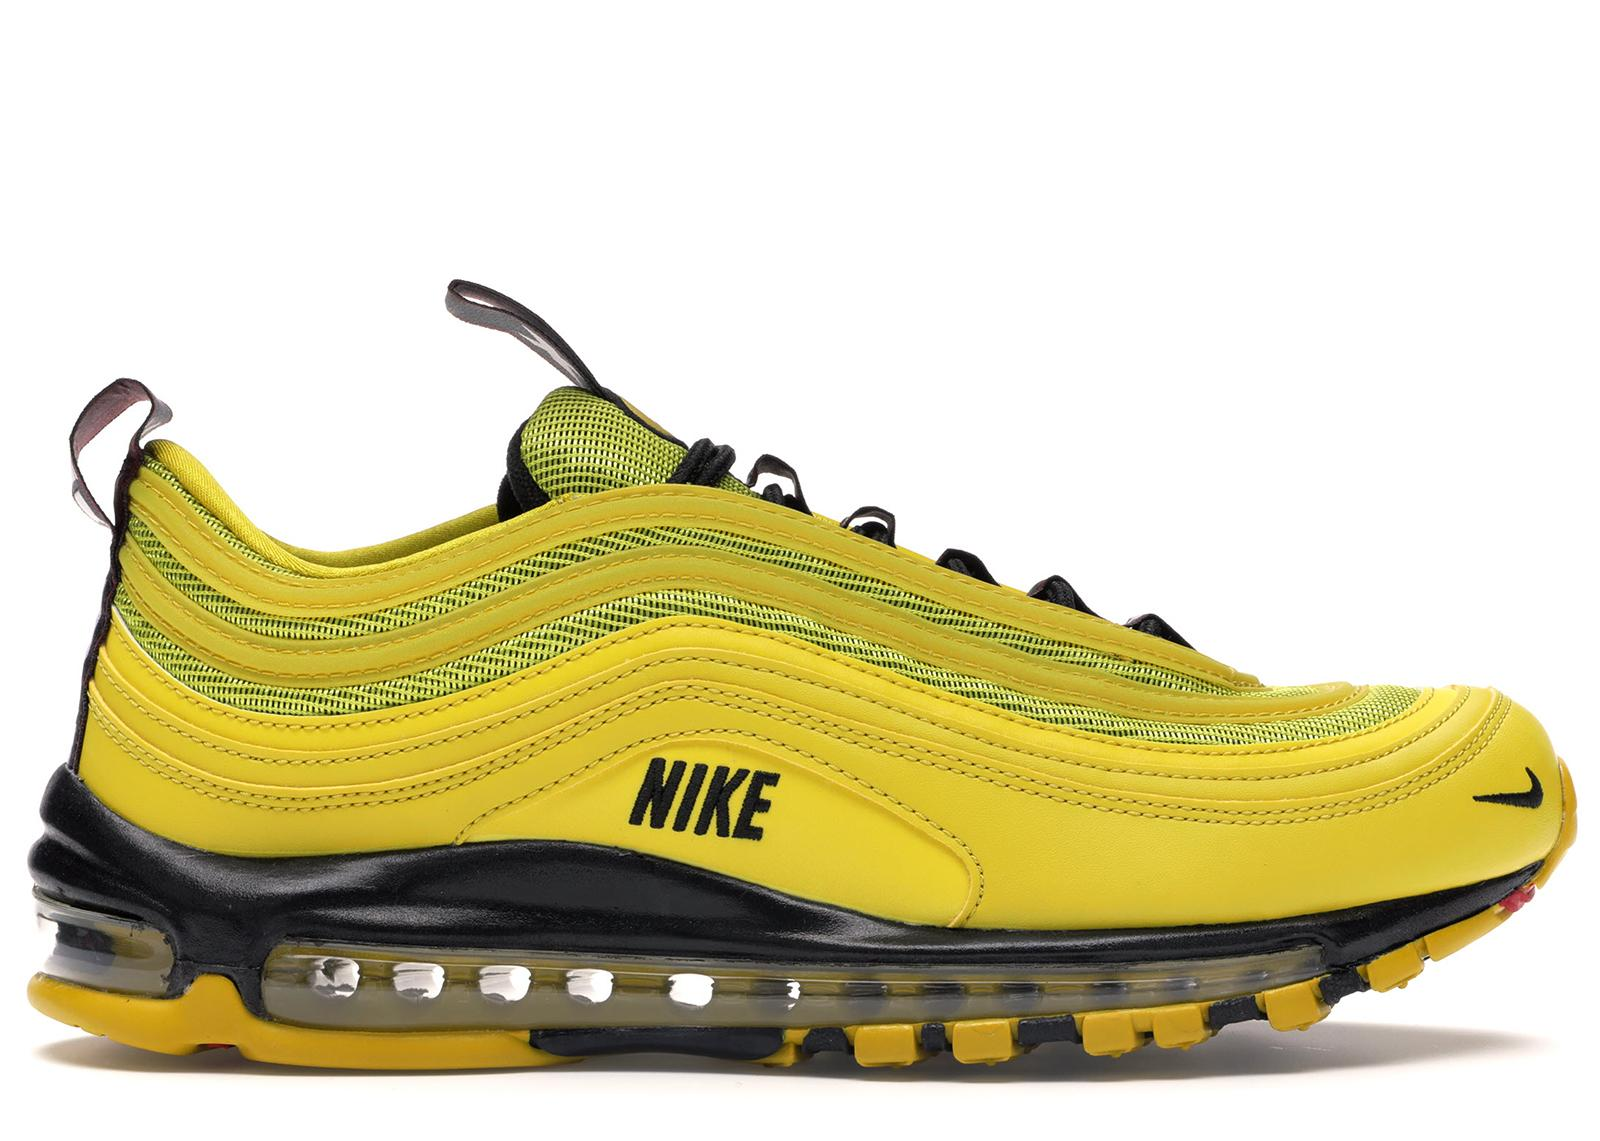 Nike Leather Air Max 97 Bright Citron